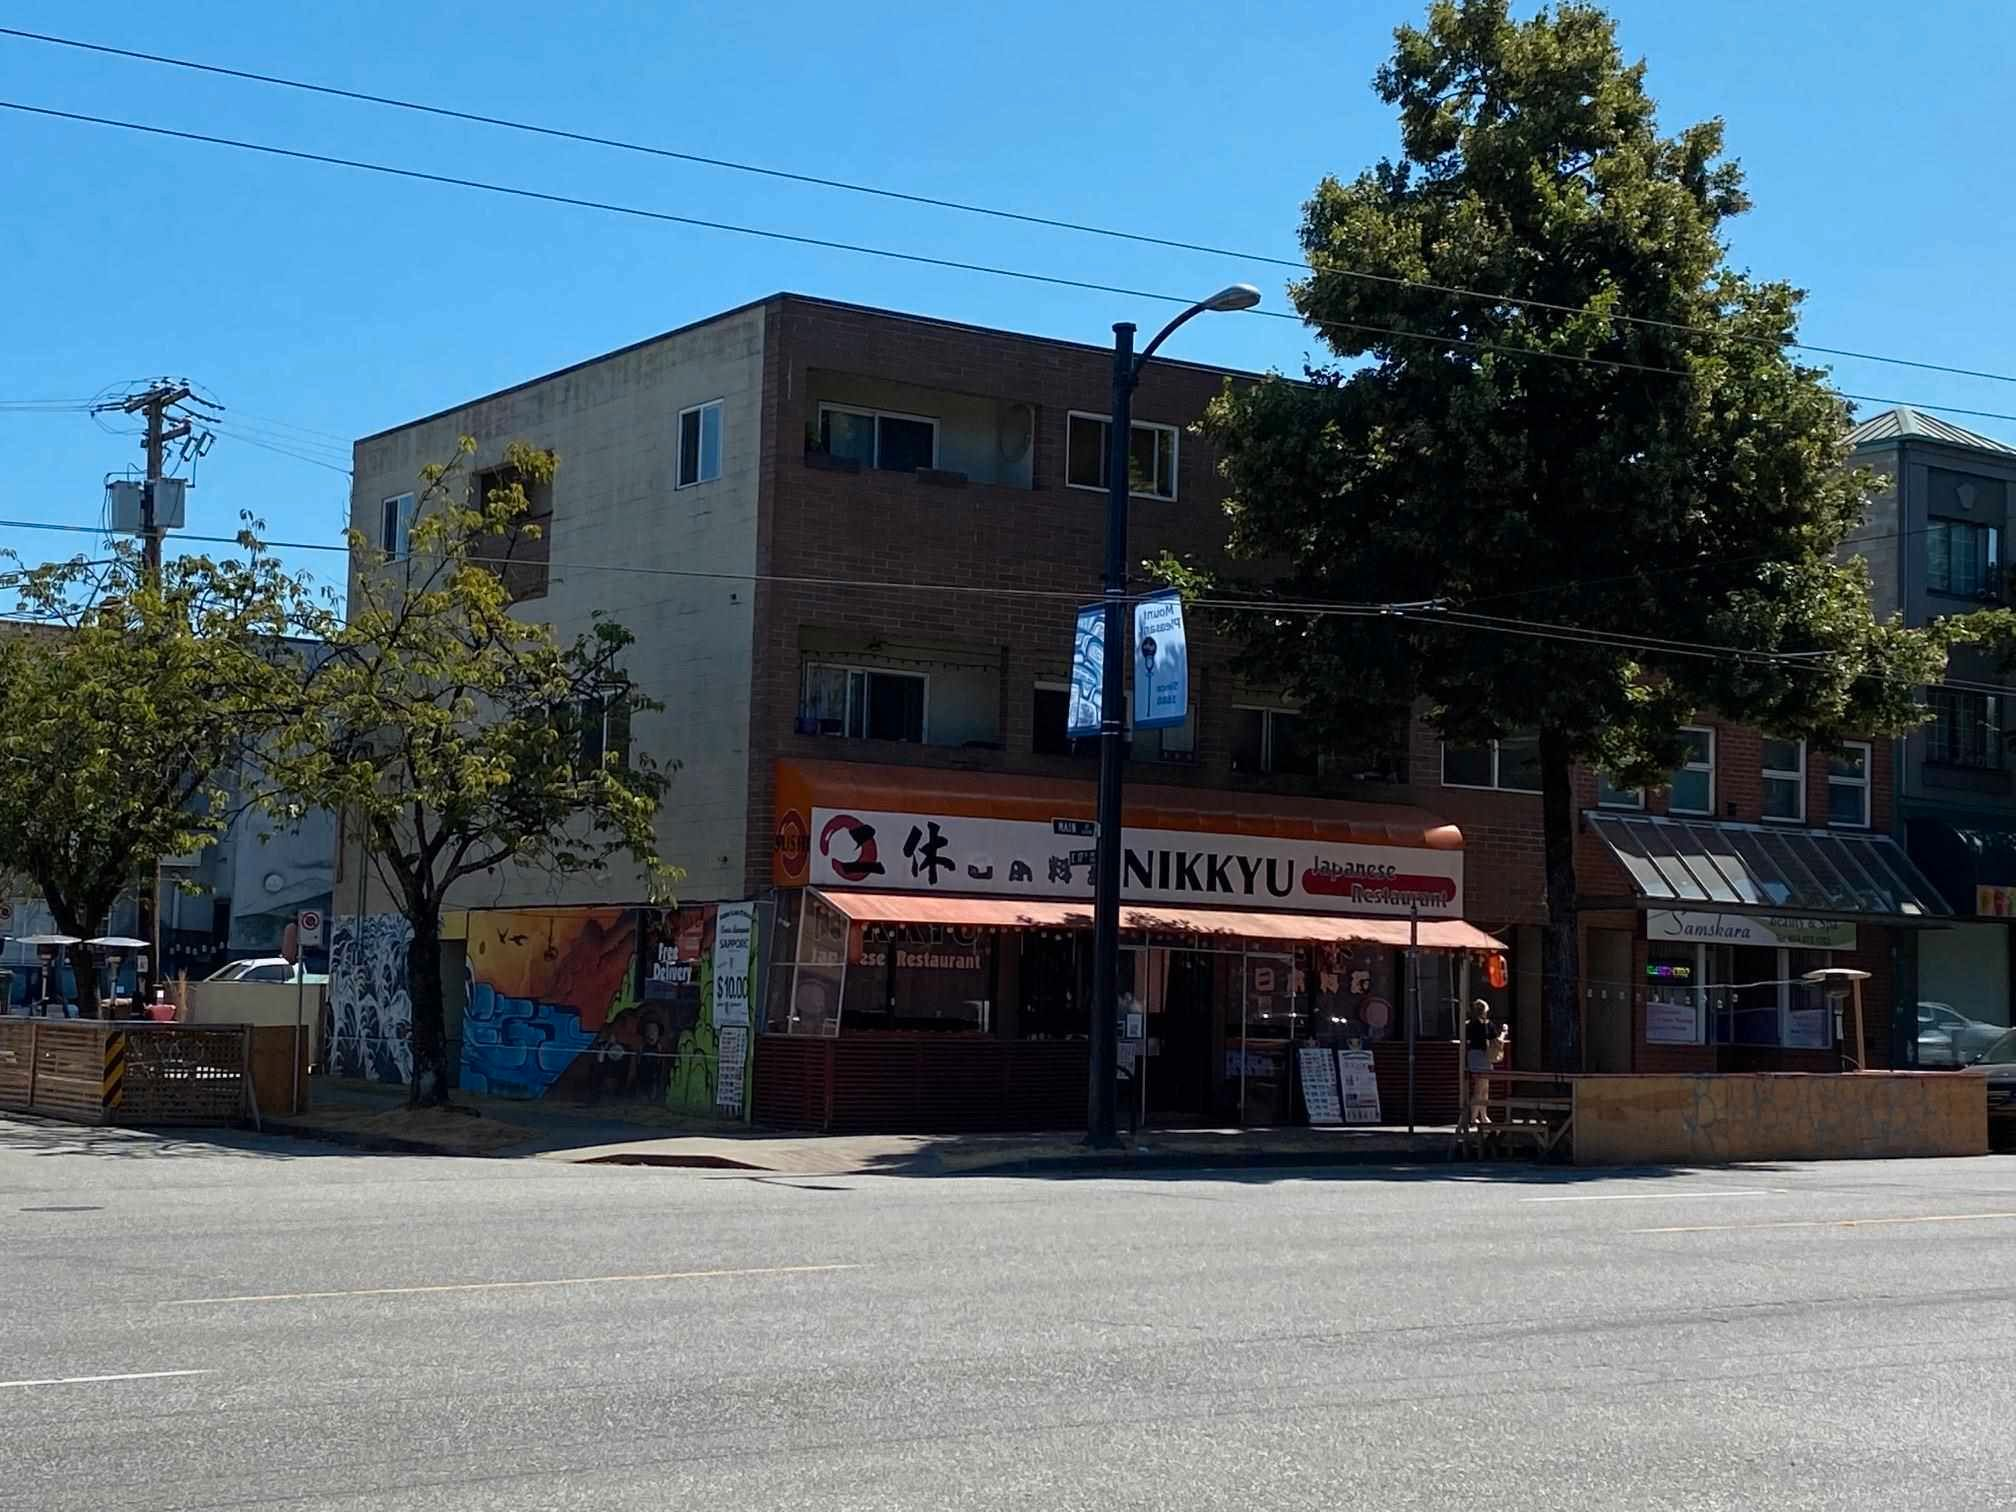 Main Photo: 3302-3310 MAIN Street in Vancouver: Main Retail for sale (Vancouver East)  : MLS®# C8039567